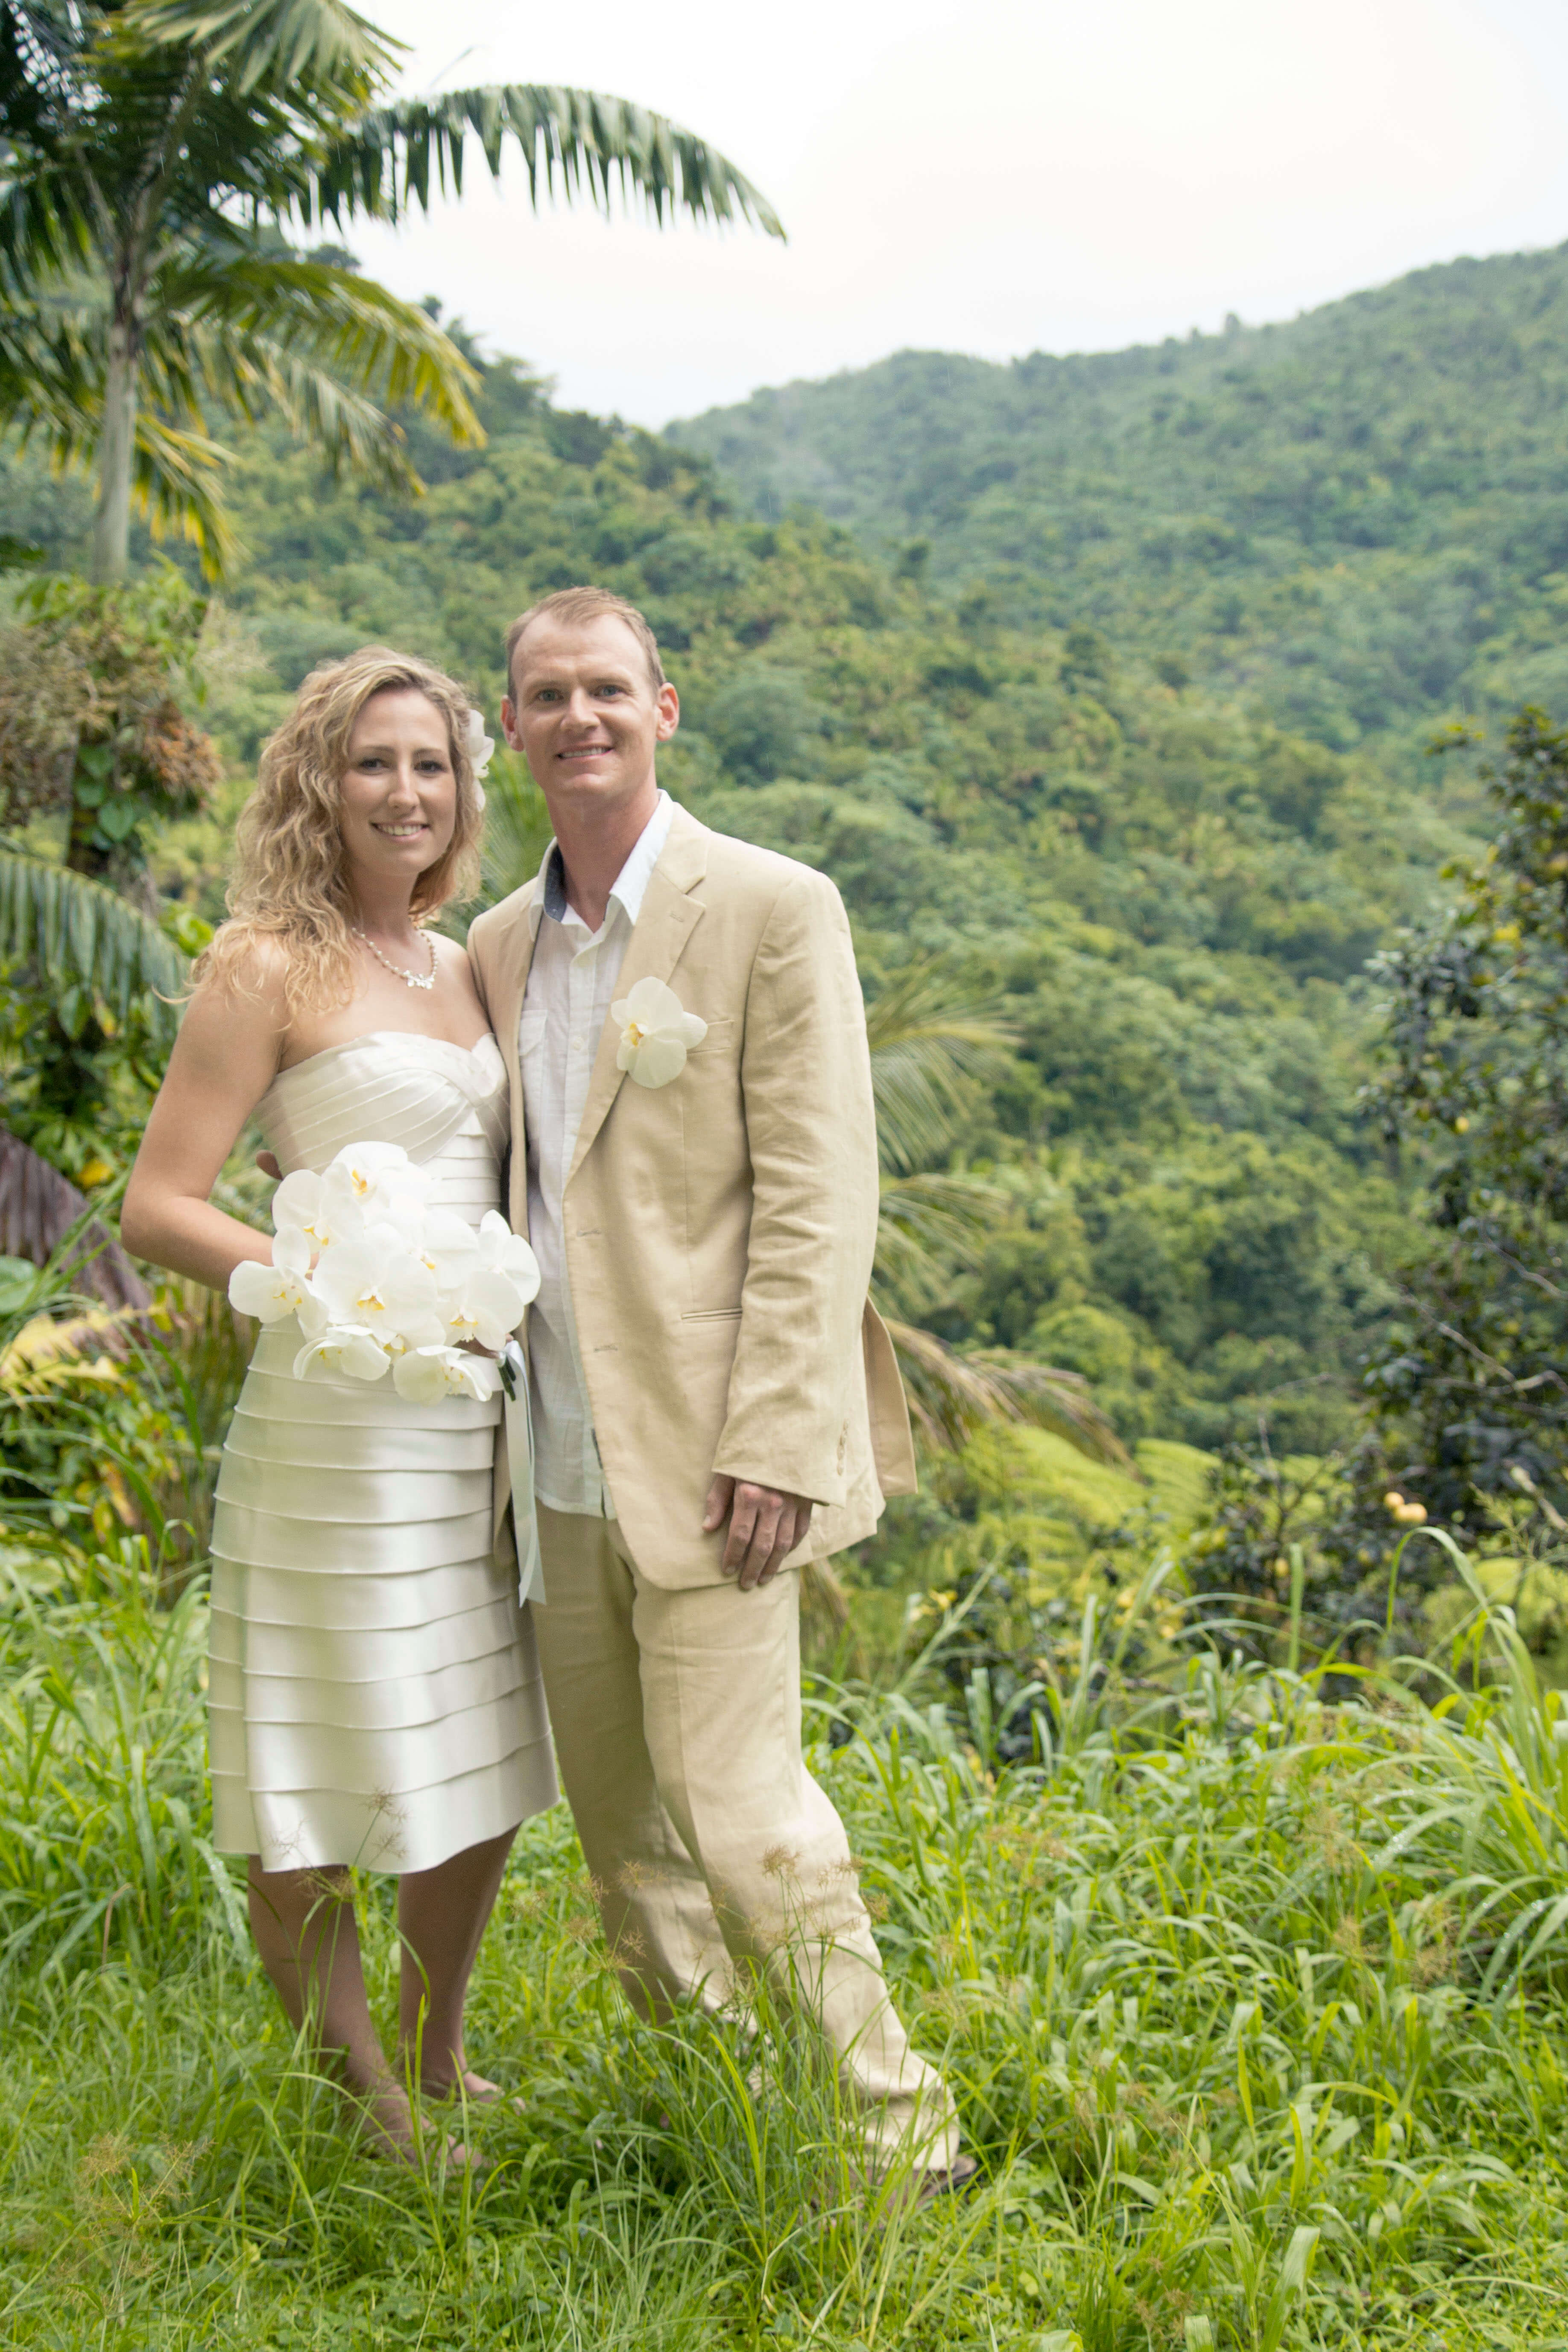 Kristin and Andrew at their wedding in El Yunque Rainforest, Puerto Rico